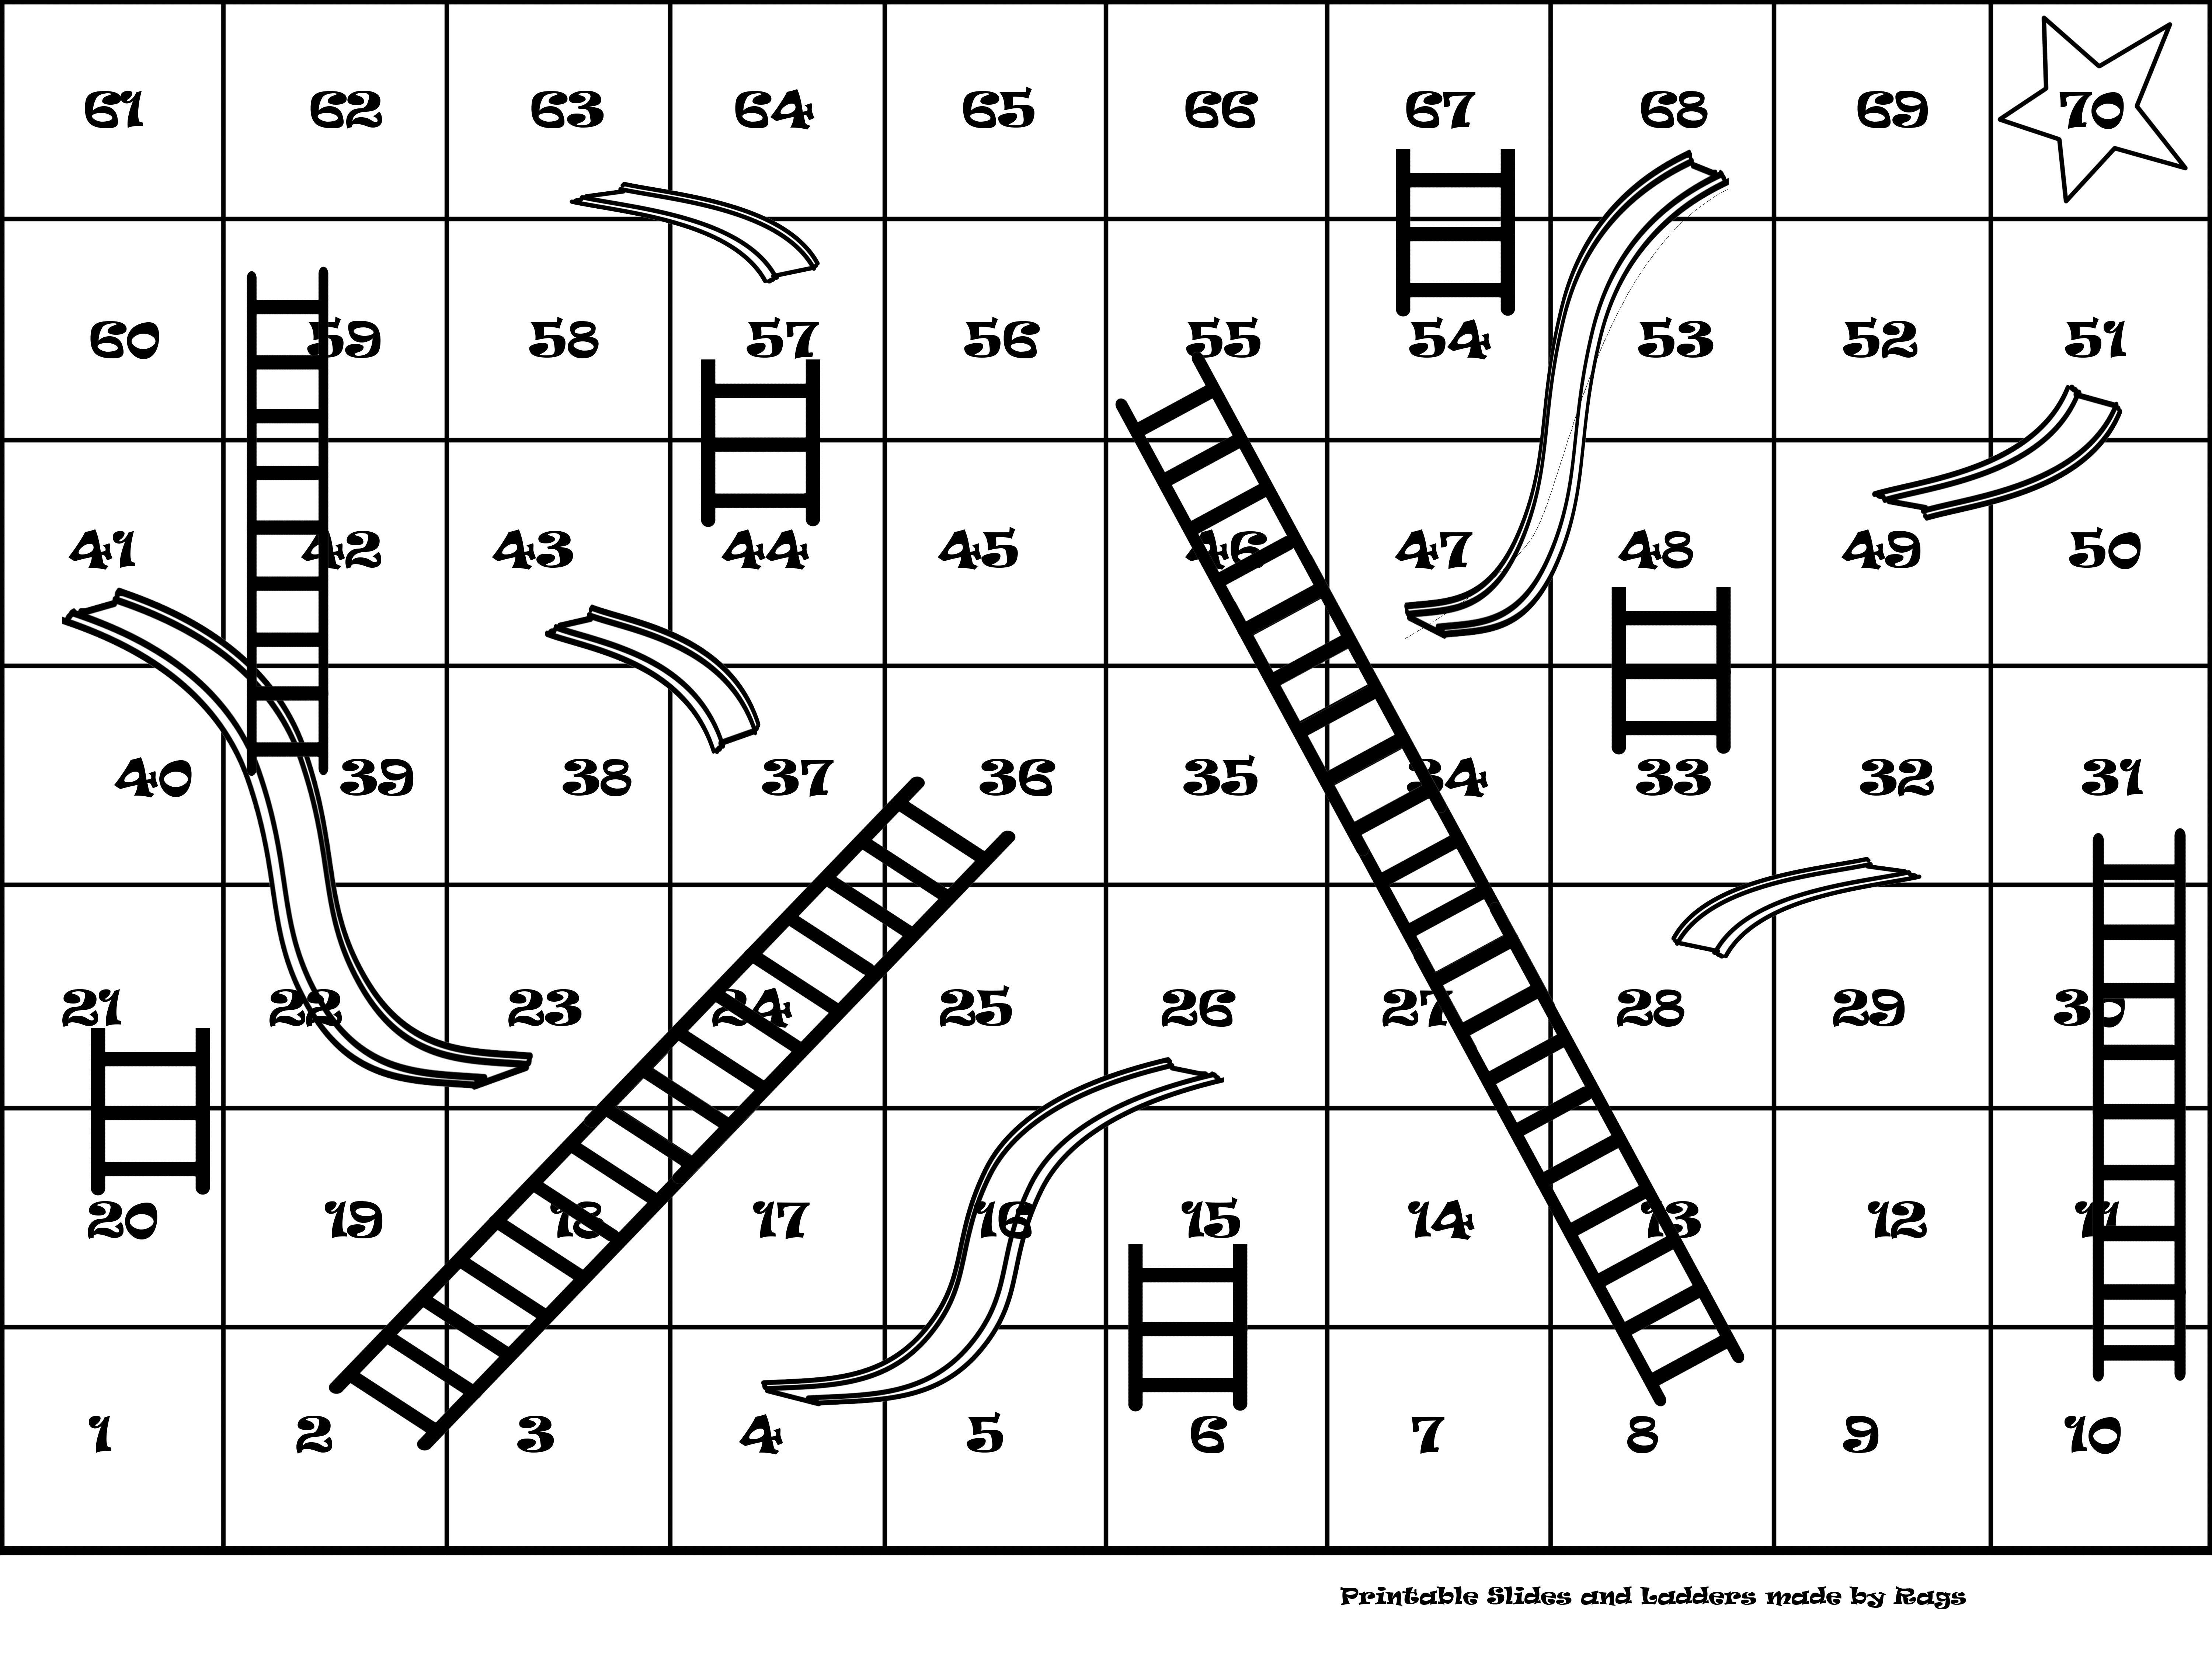 Printable Slides And Ladders Prints On 4 Sheets Of Paper